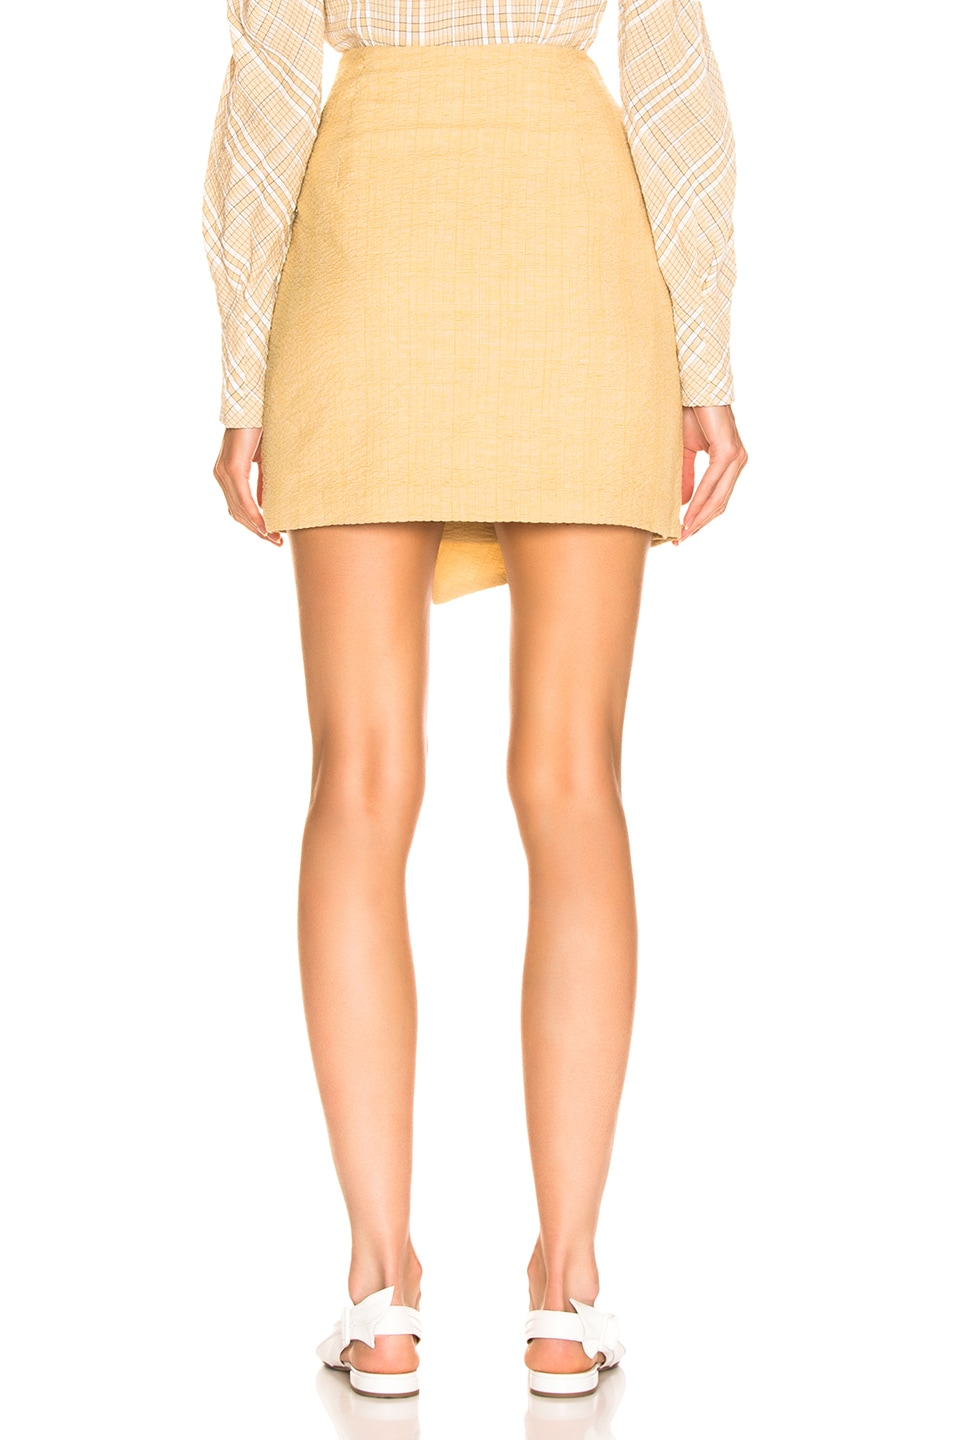 Image 4 of Atoir Golden Years Skirt in Golden Mist